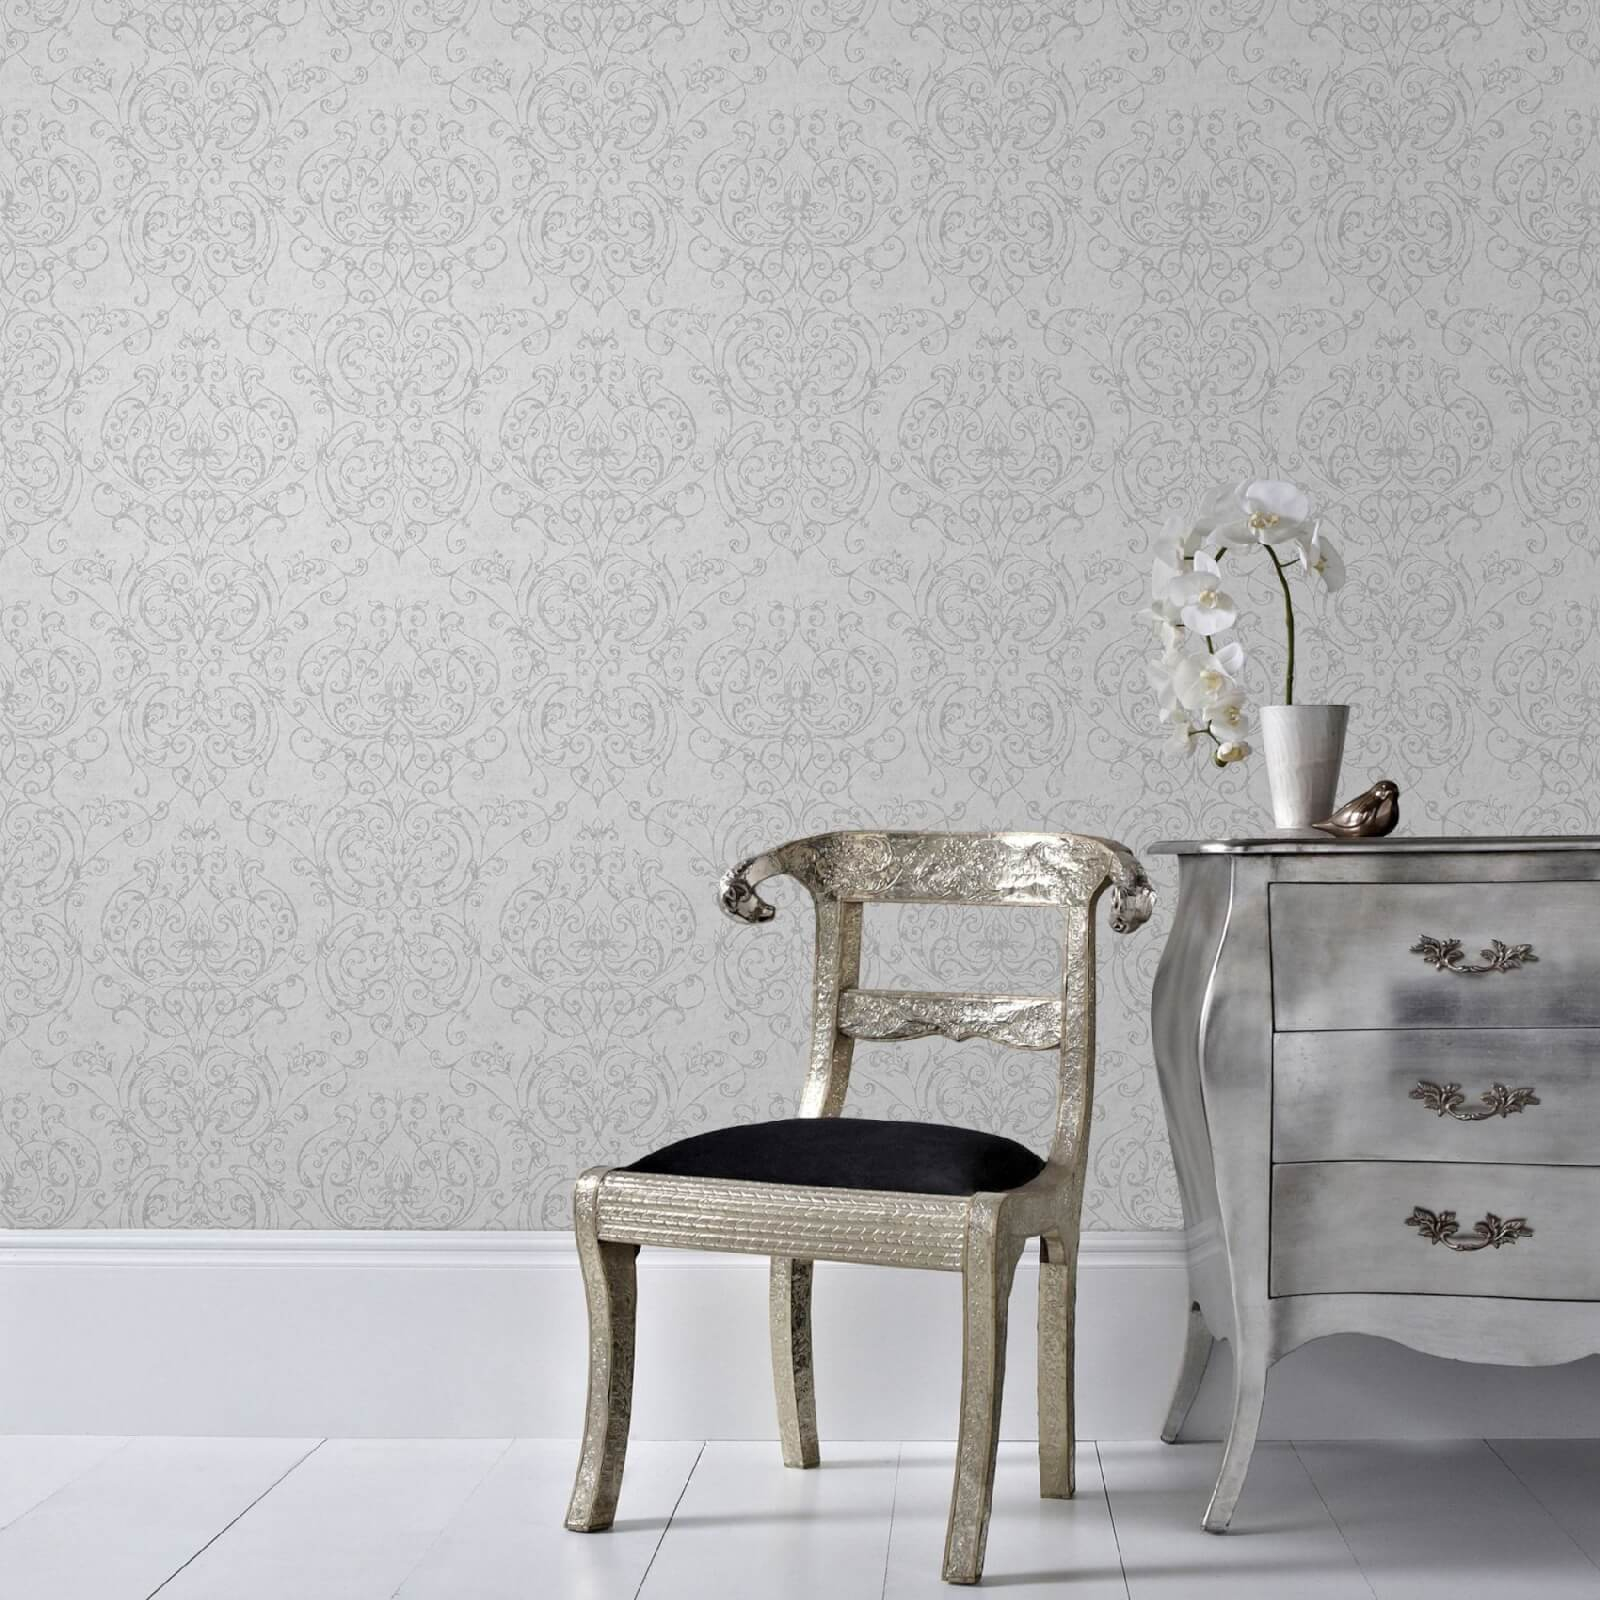 Superfresco Empress Glitter Damask Wallpaper - Grey